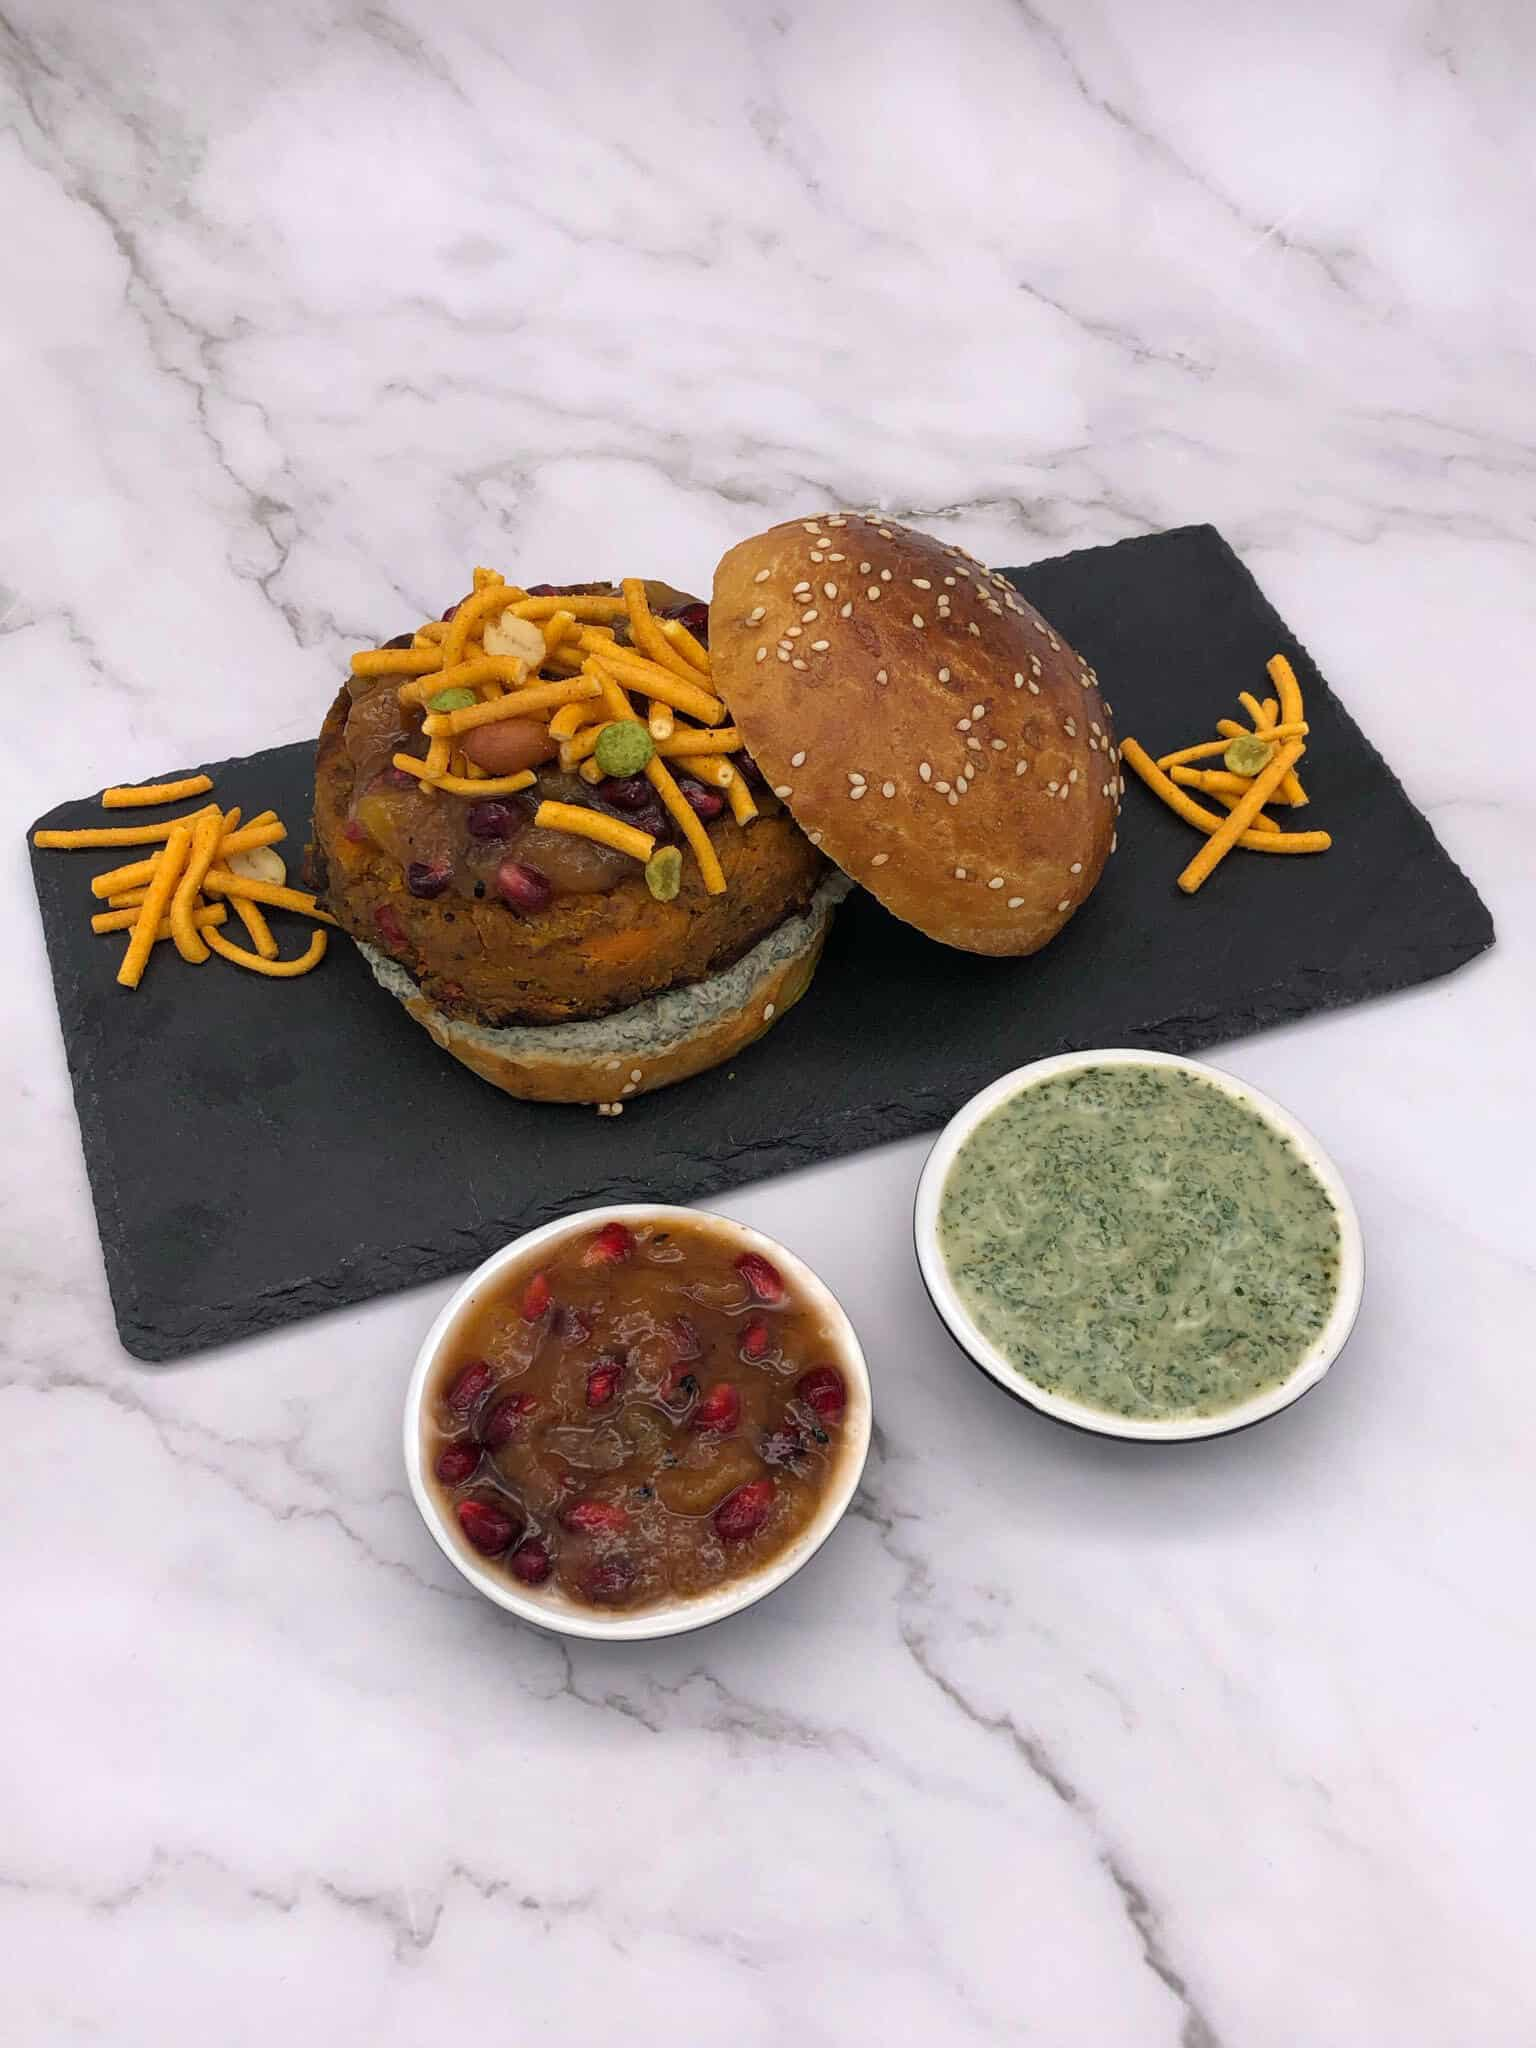 Tasty Veggie street burger on a slate and with sauces